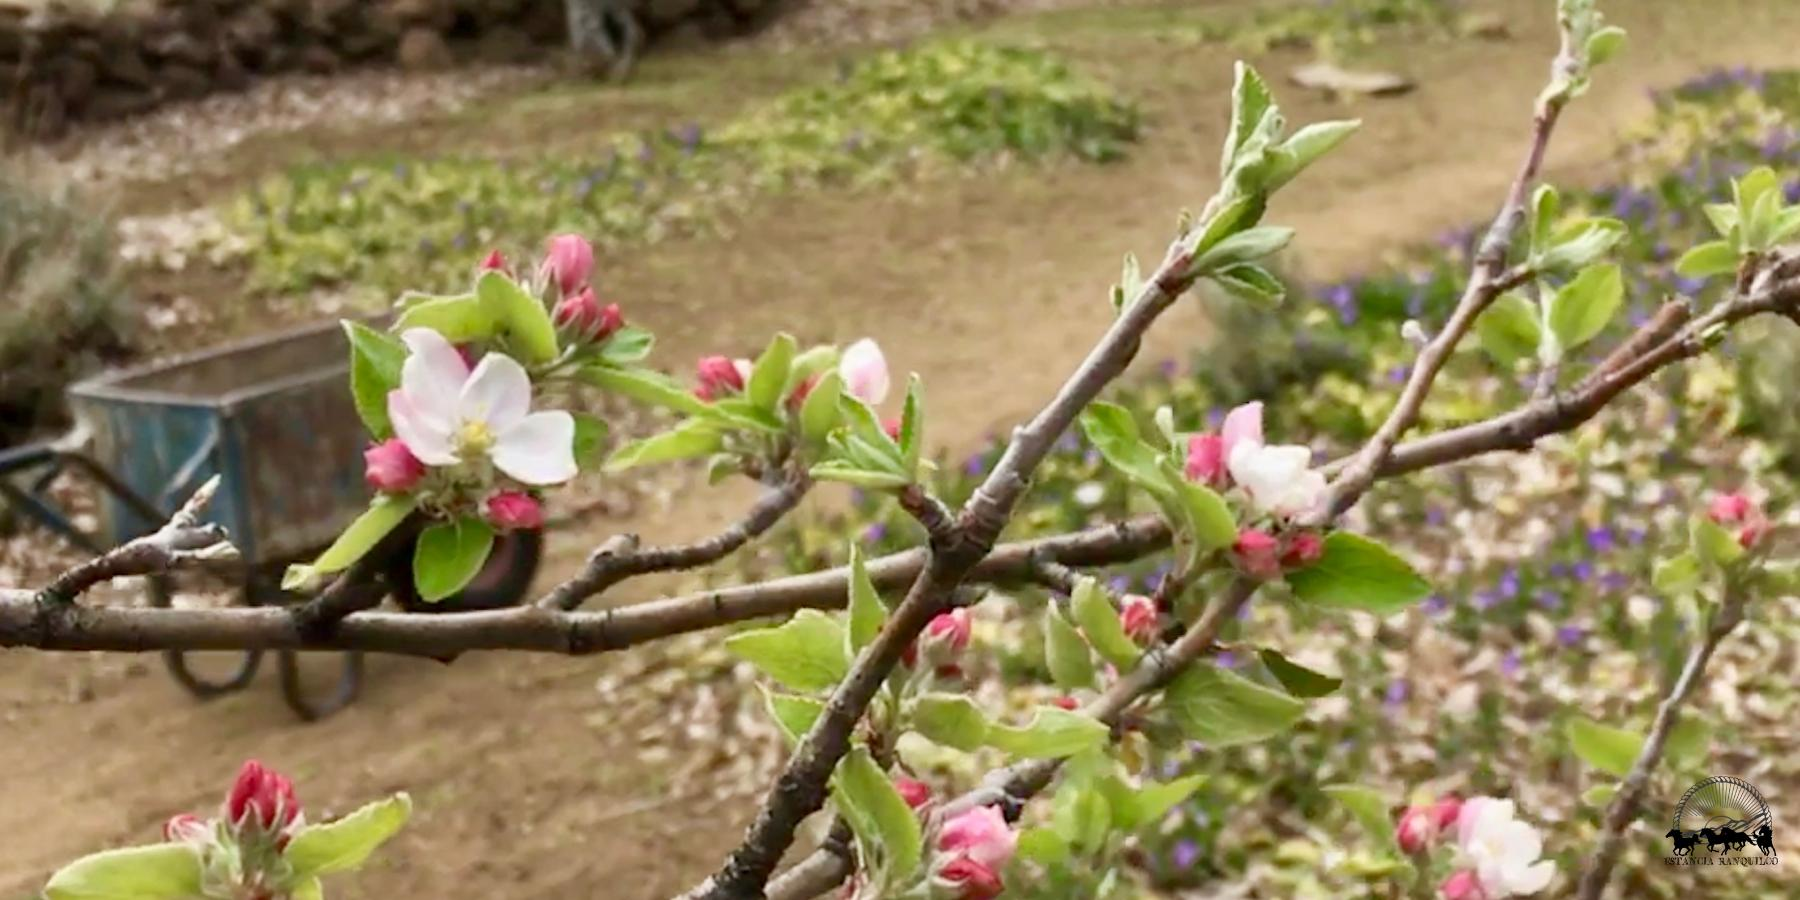 Apple blossoms begin to bloom in spring at Estancia Ranquilco